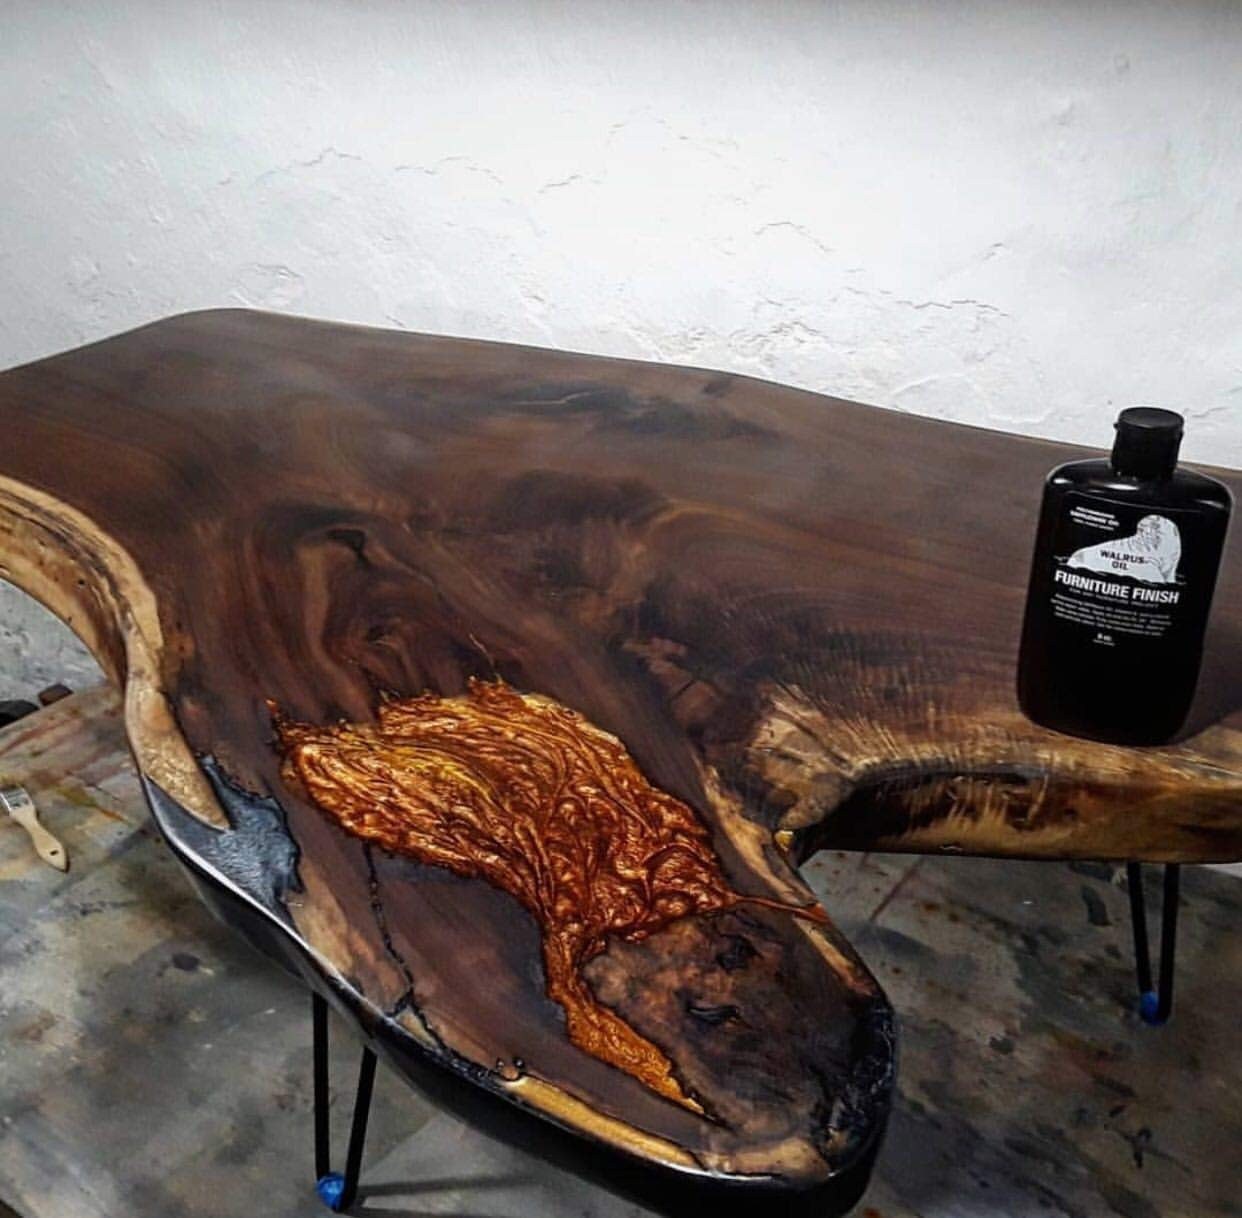 WALRUS OIL - Furniture Finish, Polymerizing Safflower Oil and Hemp Seed Oil - for Hardwood Tables, Chairs, and More. 100% Vegan, 32oz Jug by Walrus Oil (Image #3)